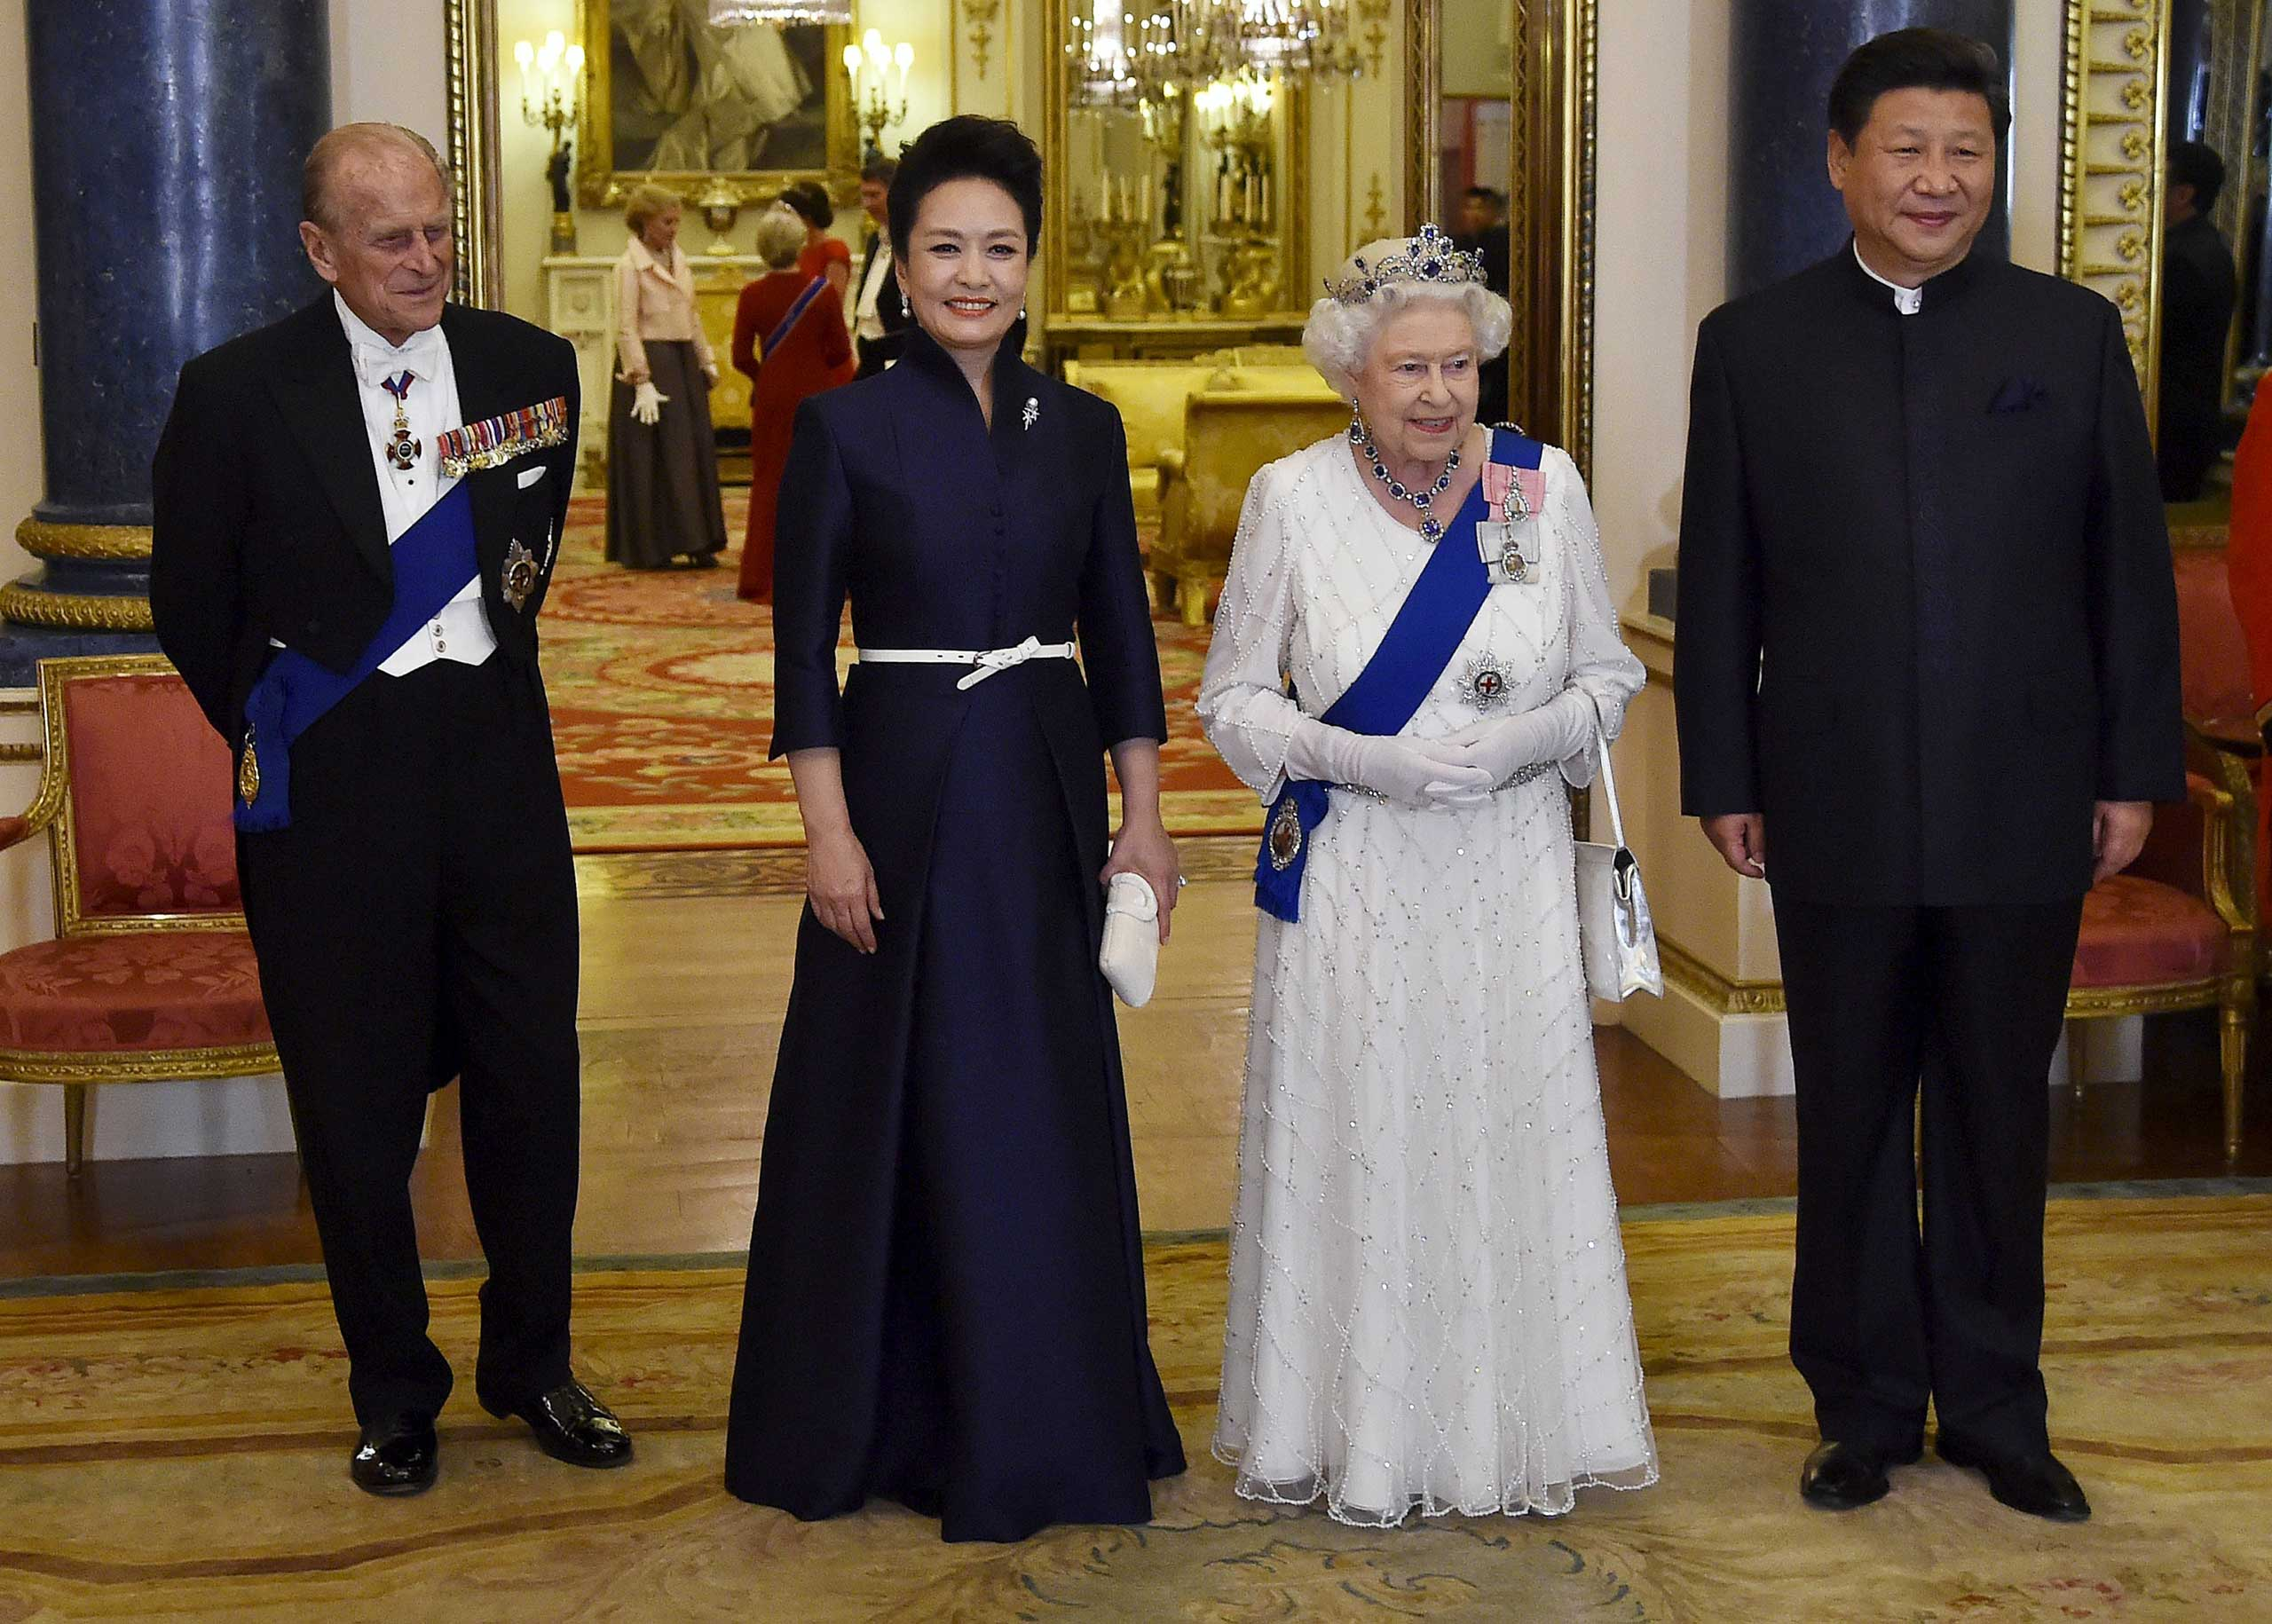 President Xi Jinping and his wife Peng Liyuan accompany Britain's Queen Elizabeth II and her husband Prince Philip, Duke of Edinburgh, as they arrive for a state banquet at Buckingham Palace, in London, on Oct. 20,2015.